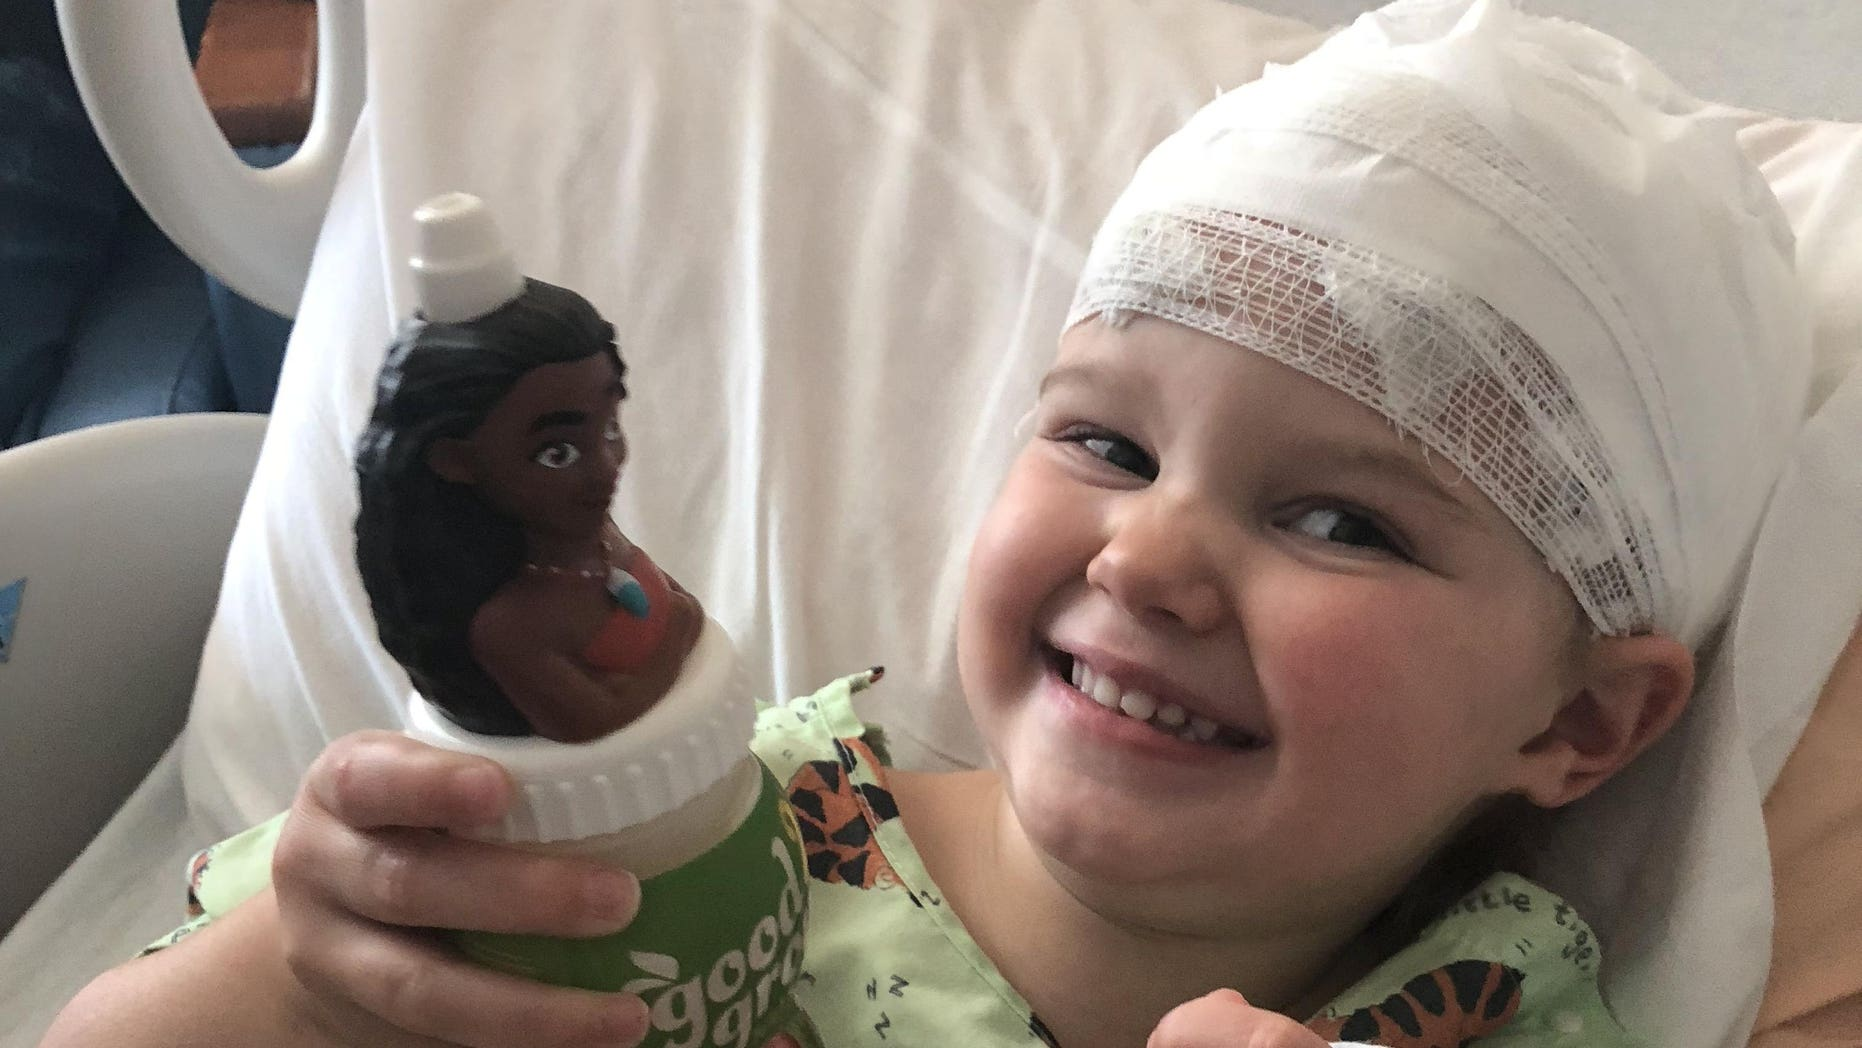 When Grace lost her ability to walk and her speech, wholeheartedly, to single syllables, neurologists suspected she was suffering from autoimmune encephalitis.